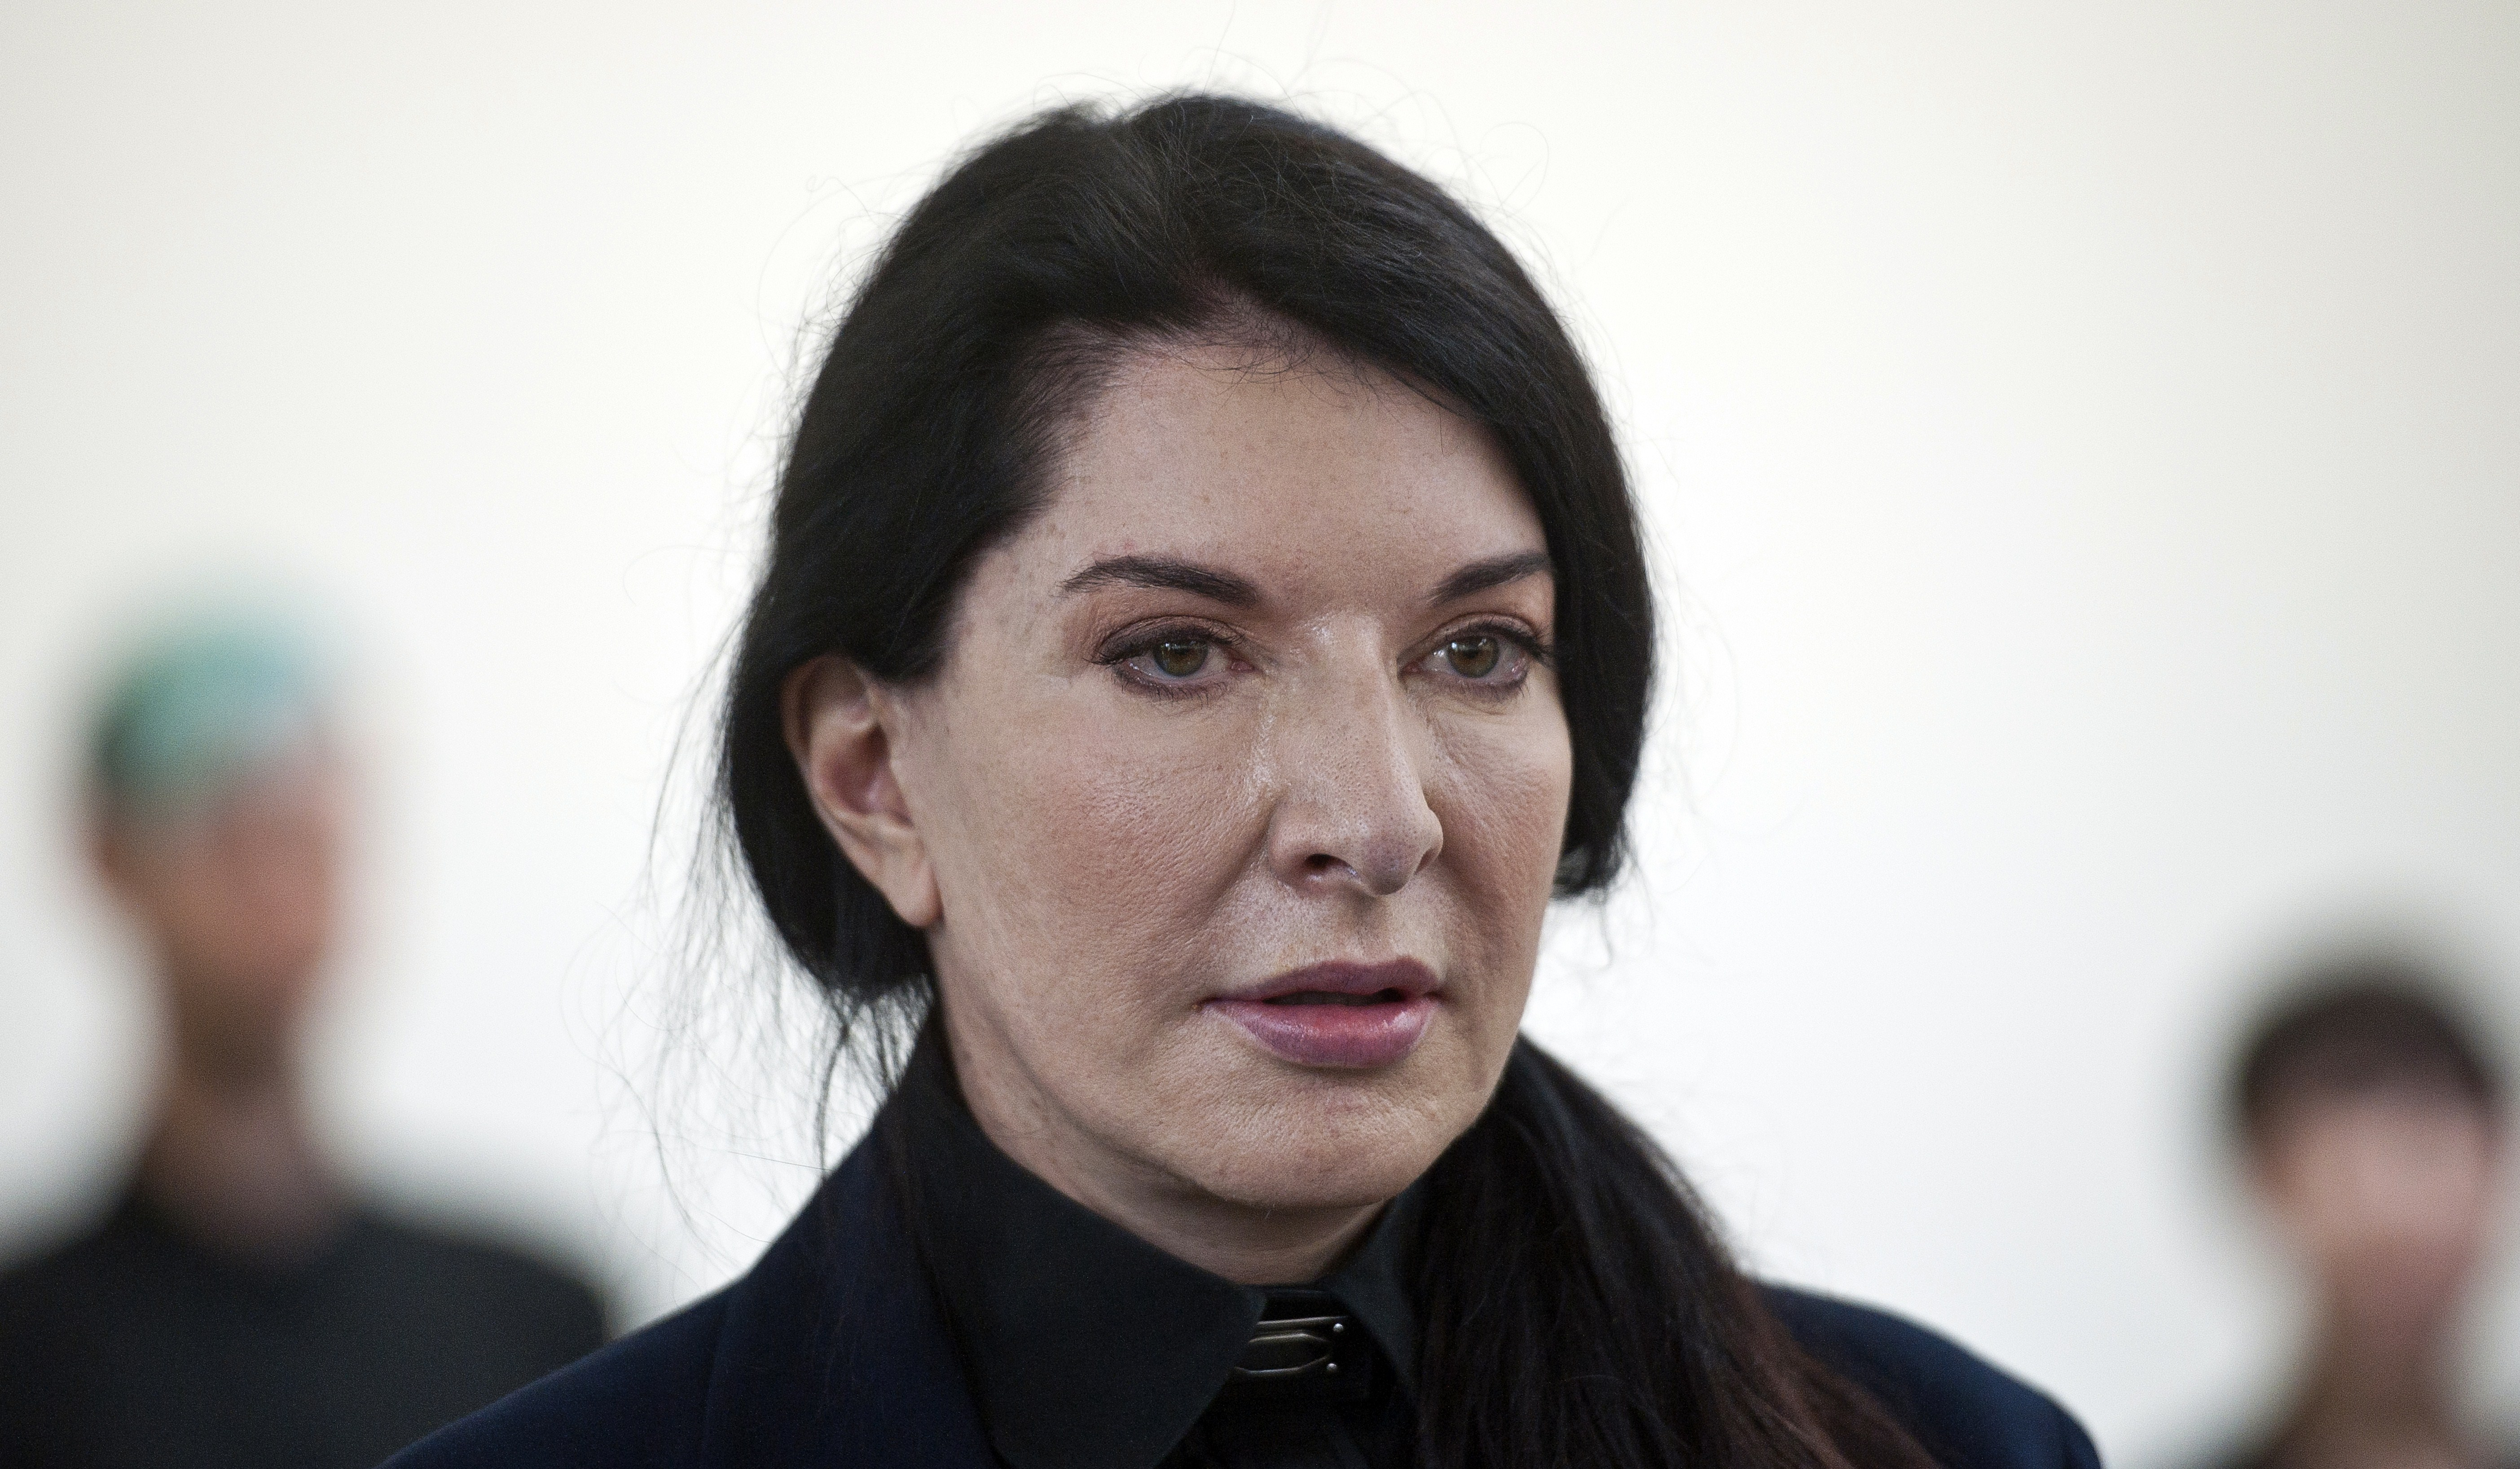 Serbian-born performance artist Marina Abramovic attends a press conference to announce her latest durational performance at the Serpentine Gallery in Hyde Park, central London on June 9, 2014. The performance will last for a total of 512 hours and will begin on June 11.